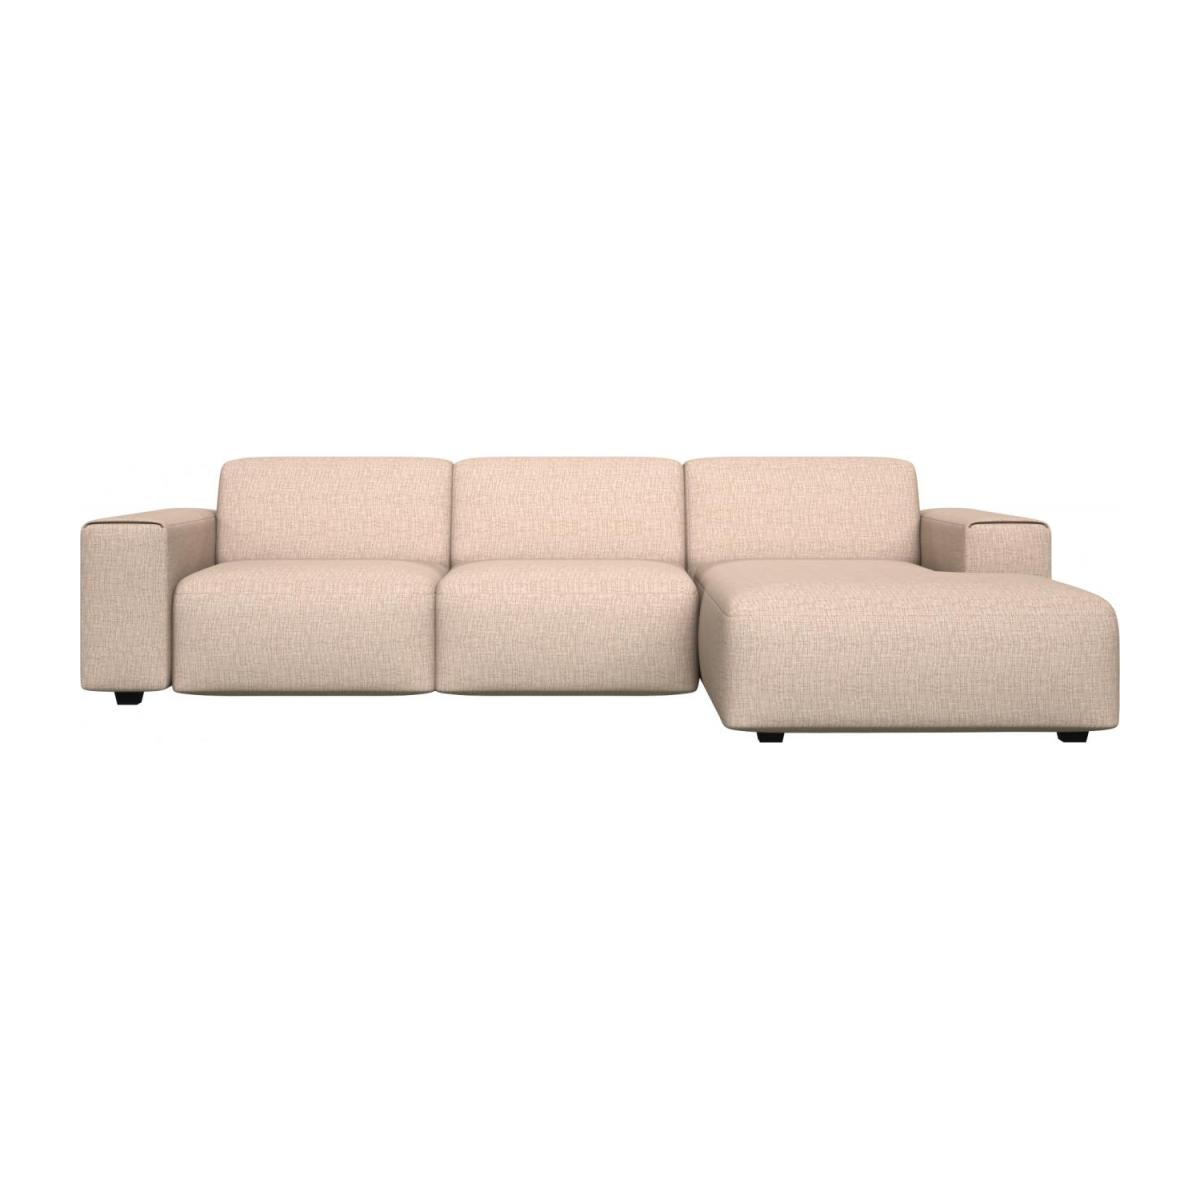 3 seater sofa with chaise longue on the right in Ancio fabric, nature n°2